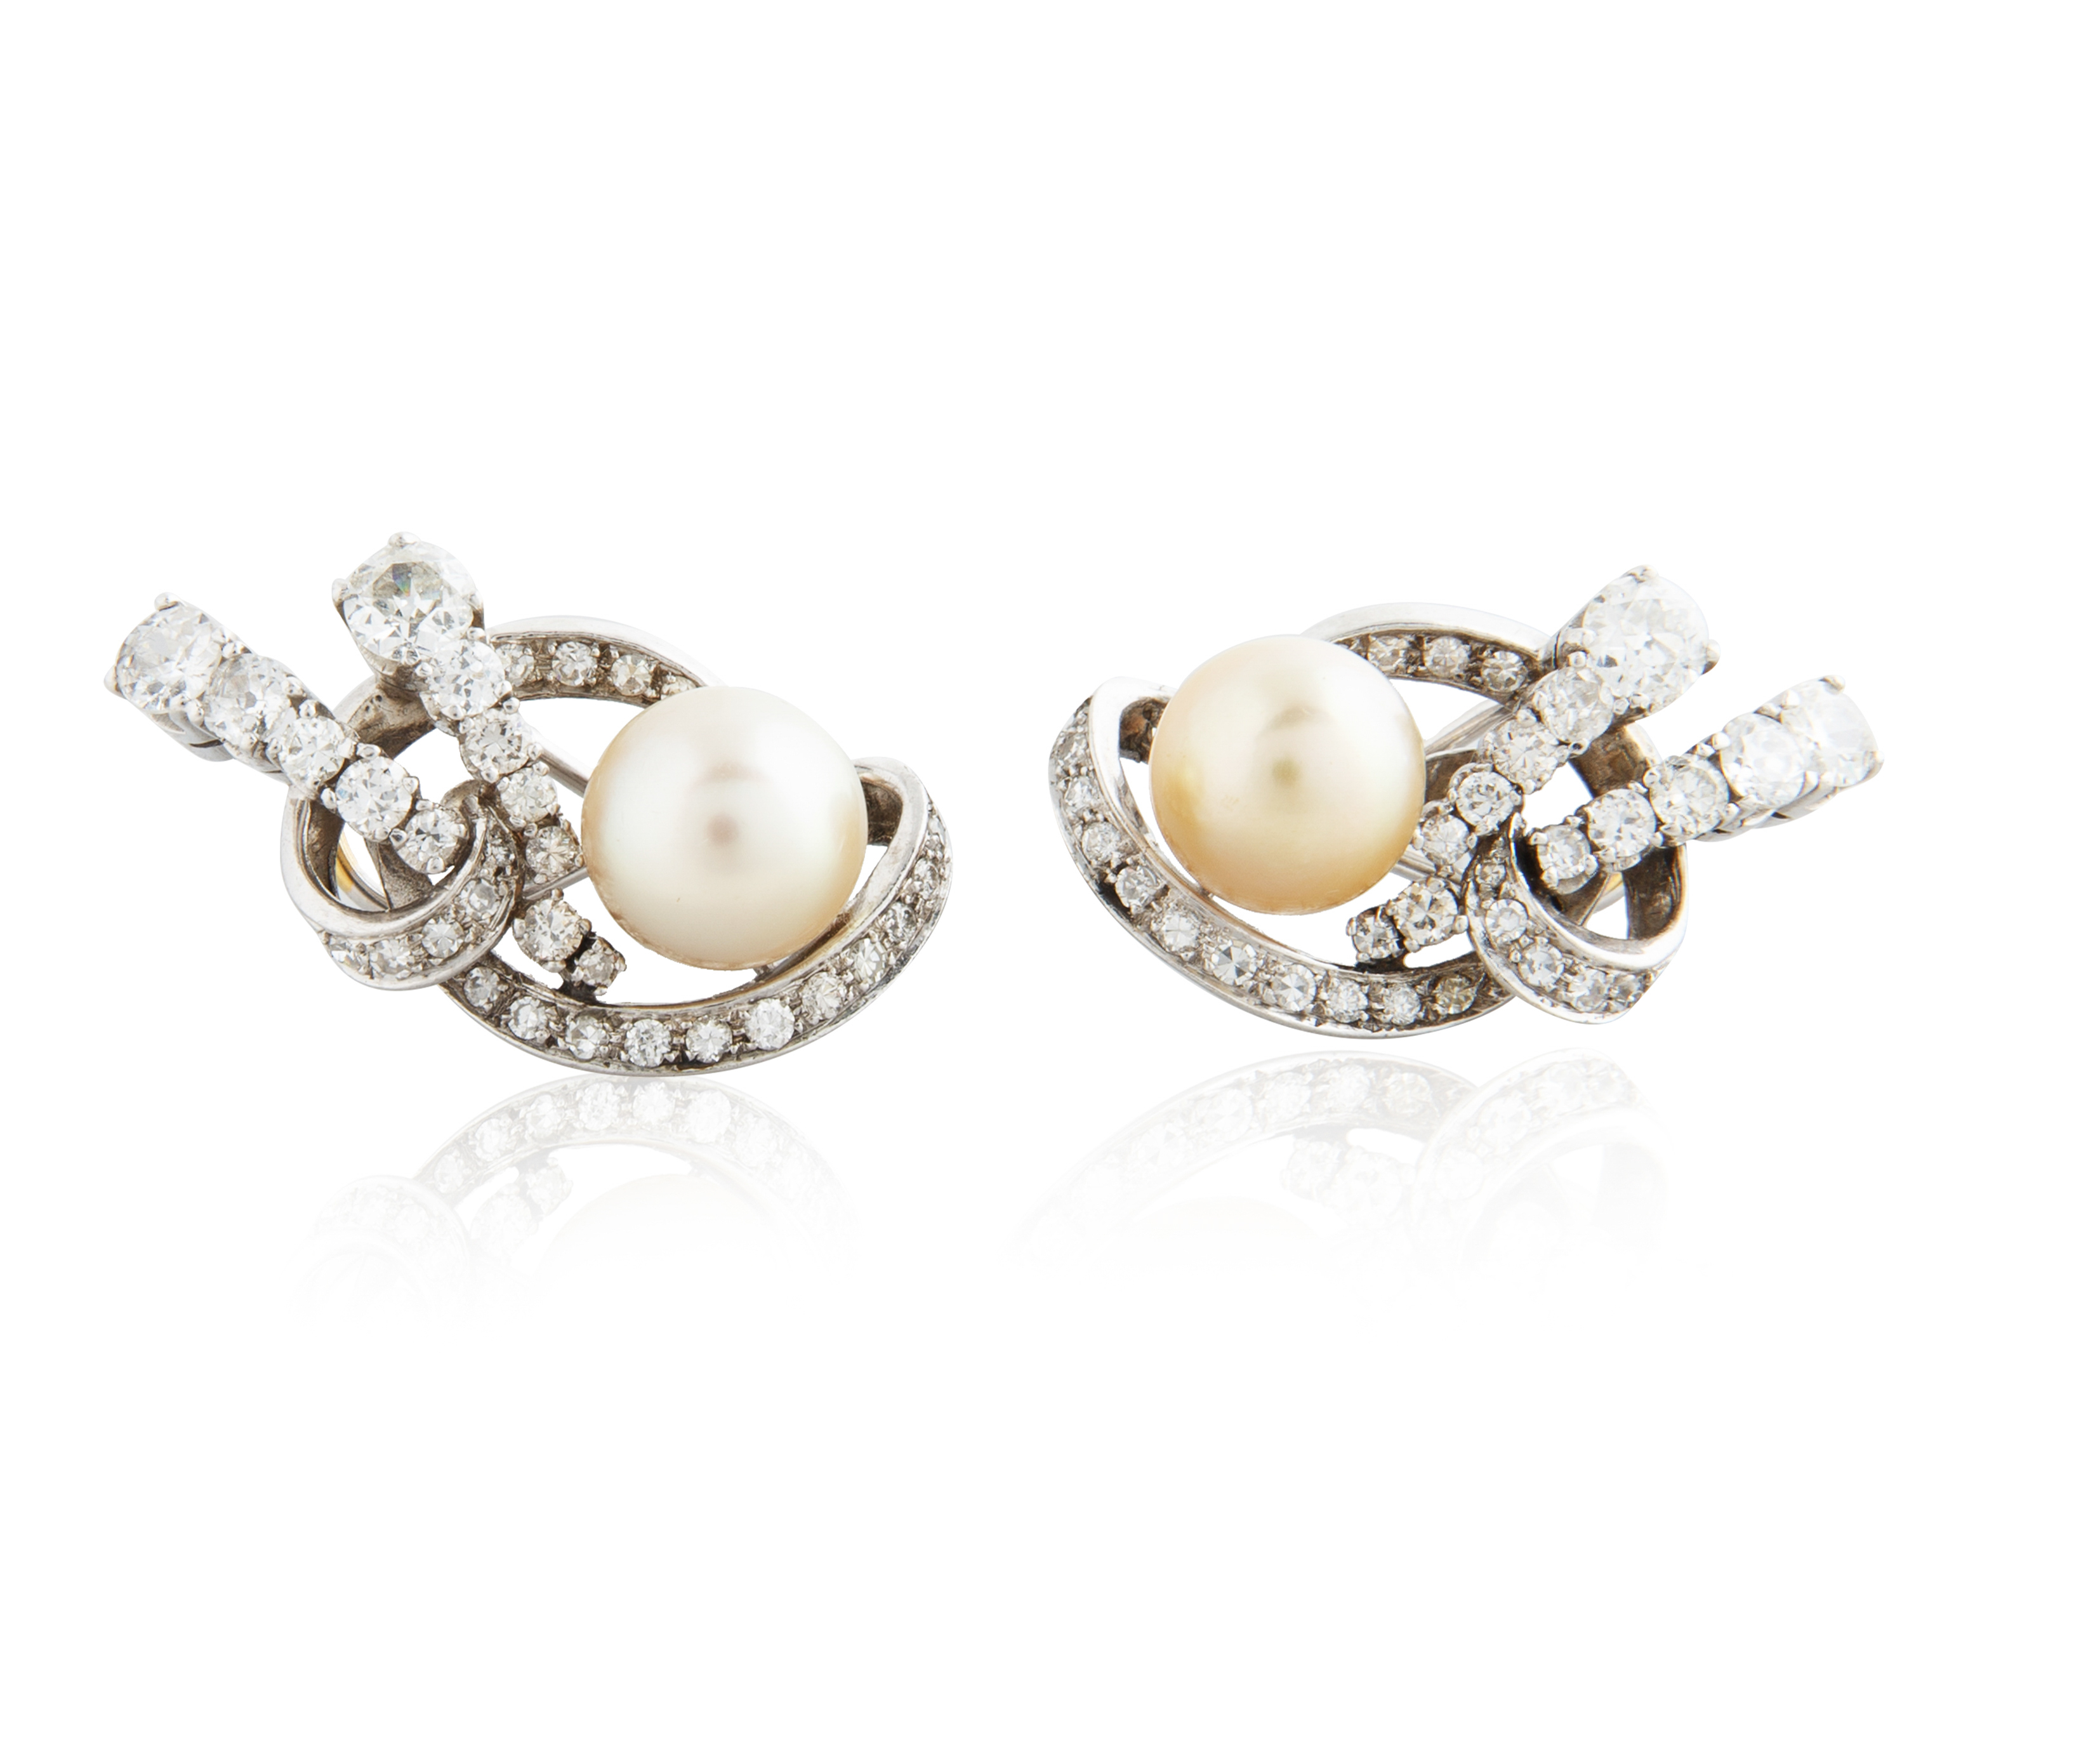 PAIR OF CULTURED YELLOW PEARL, DIAMOND AND WHITE GOLD EARRINGS